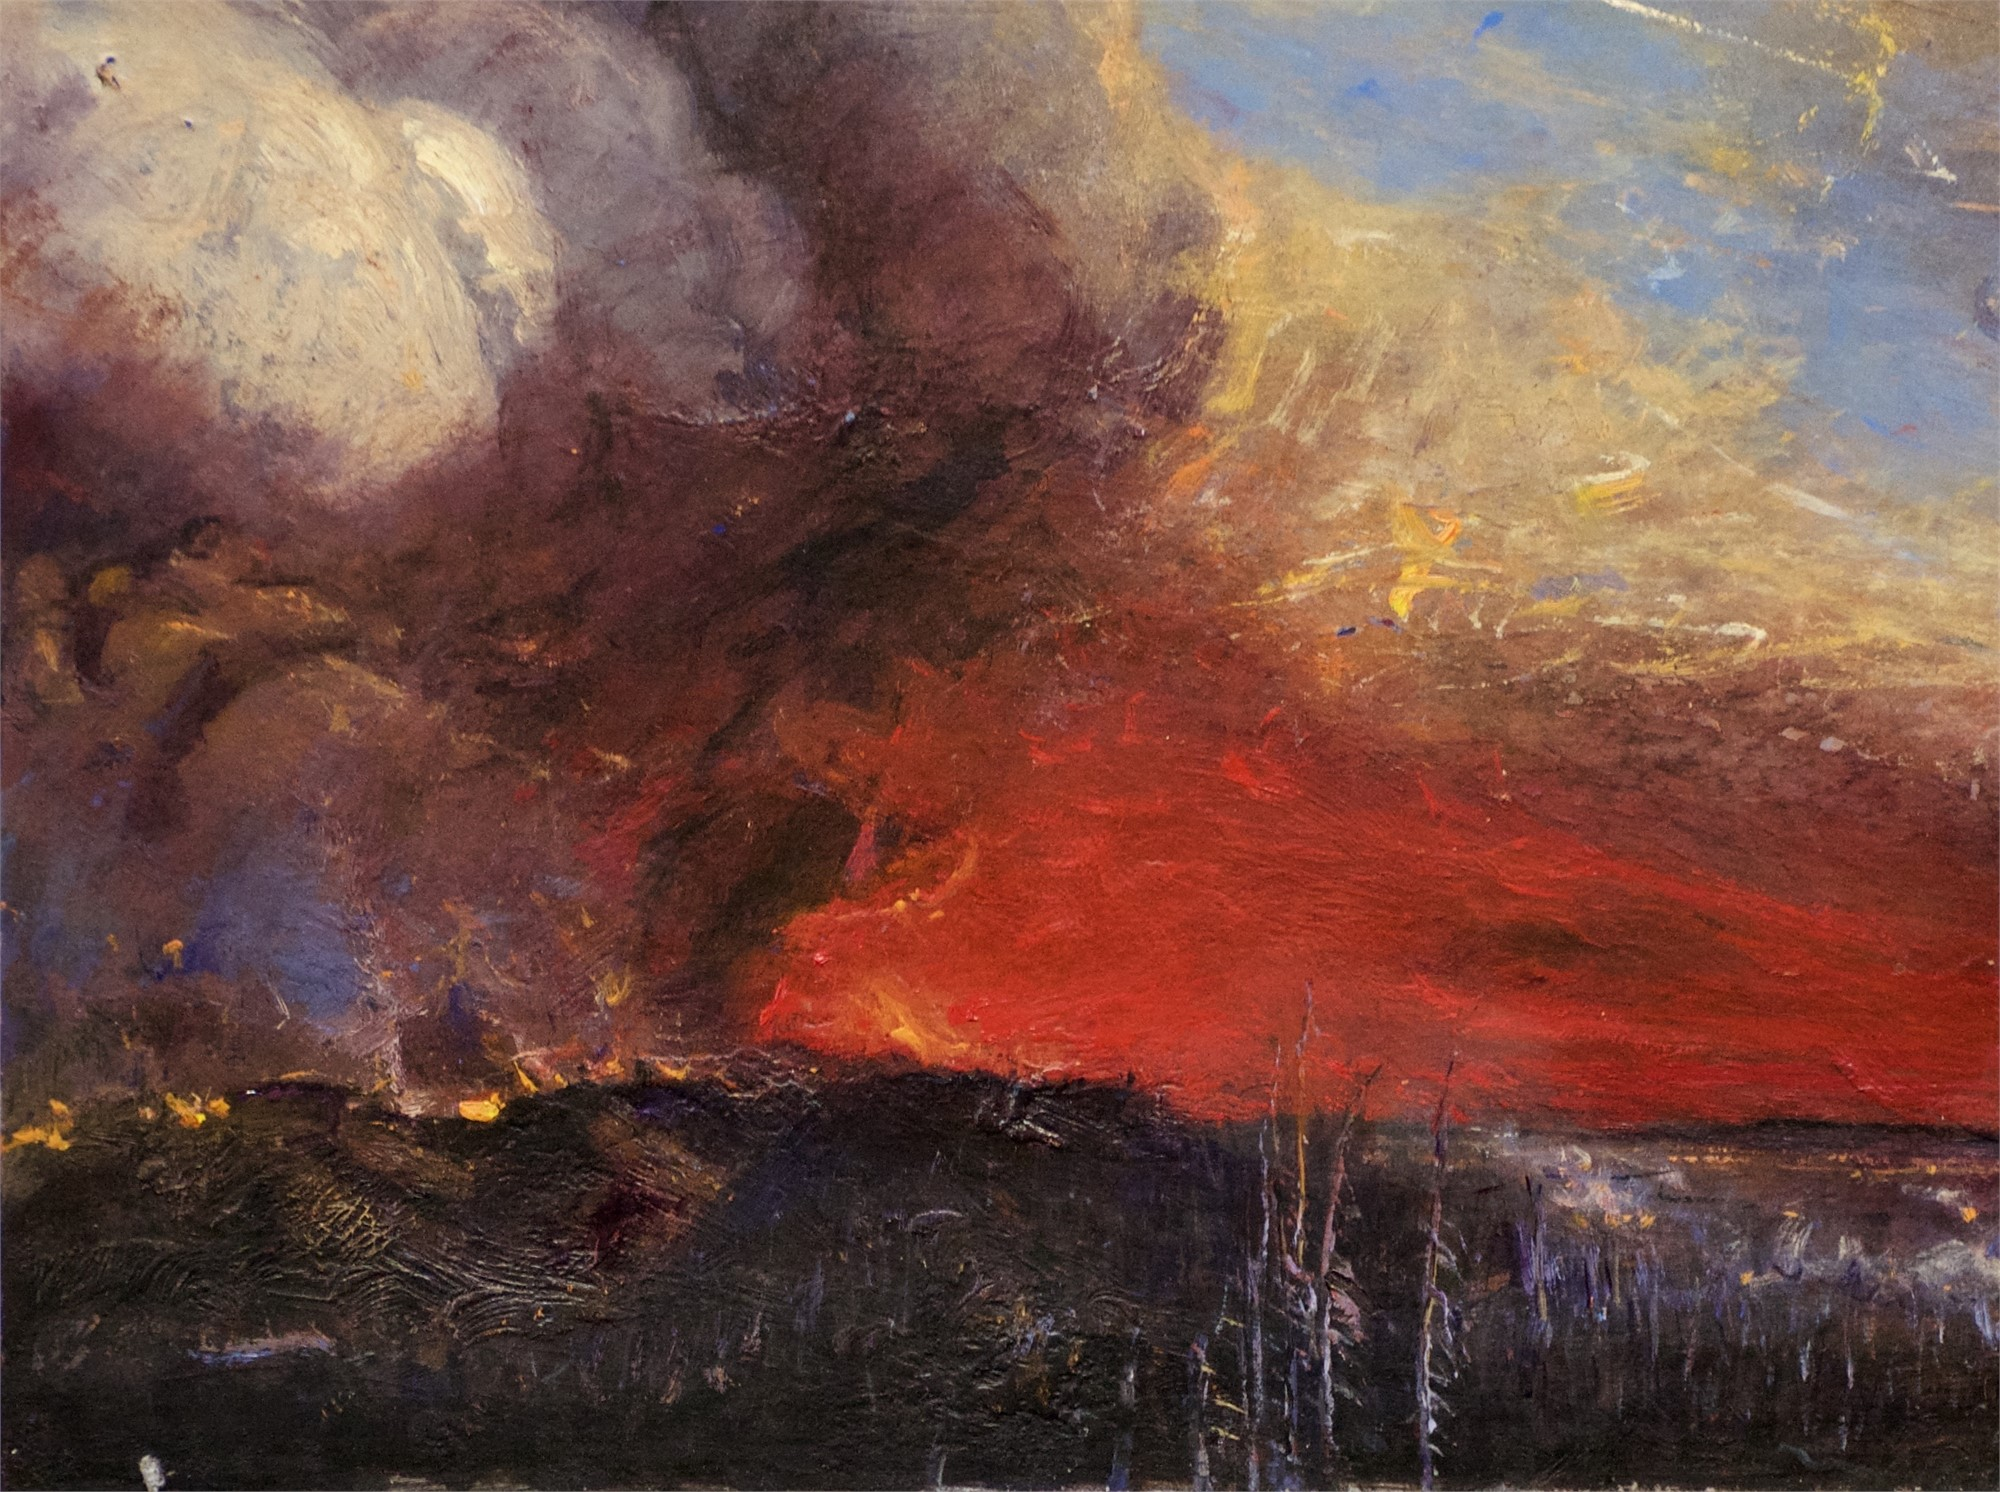 Fire Cloud by Gordon Brown